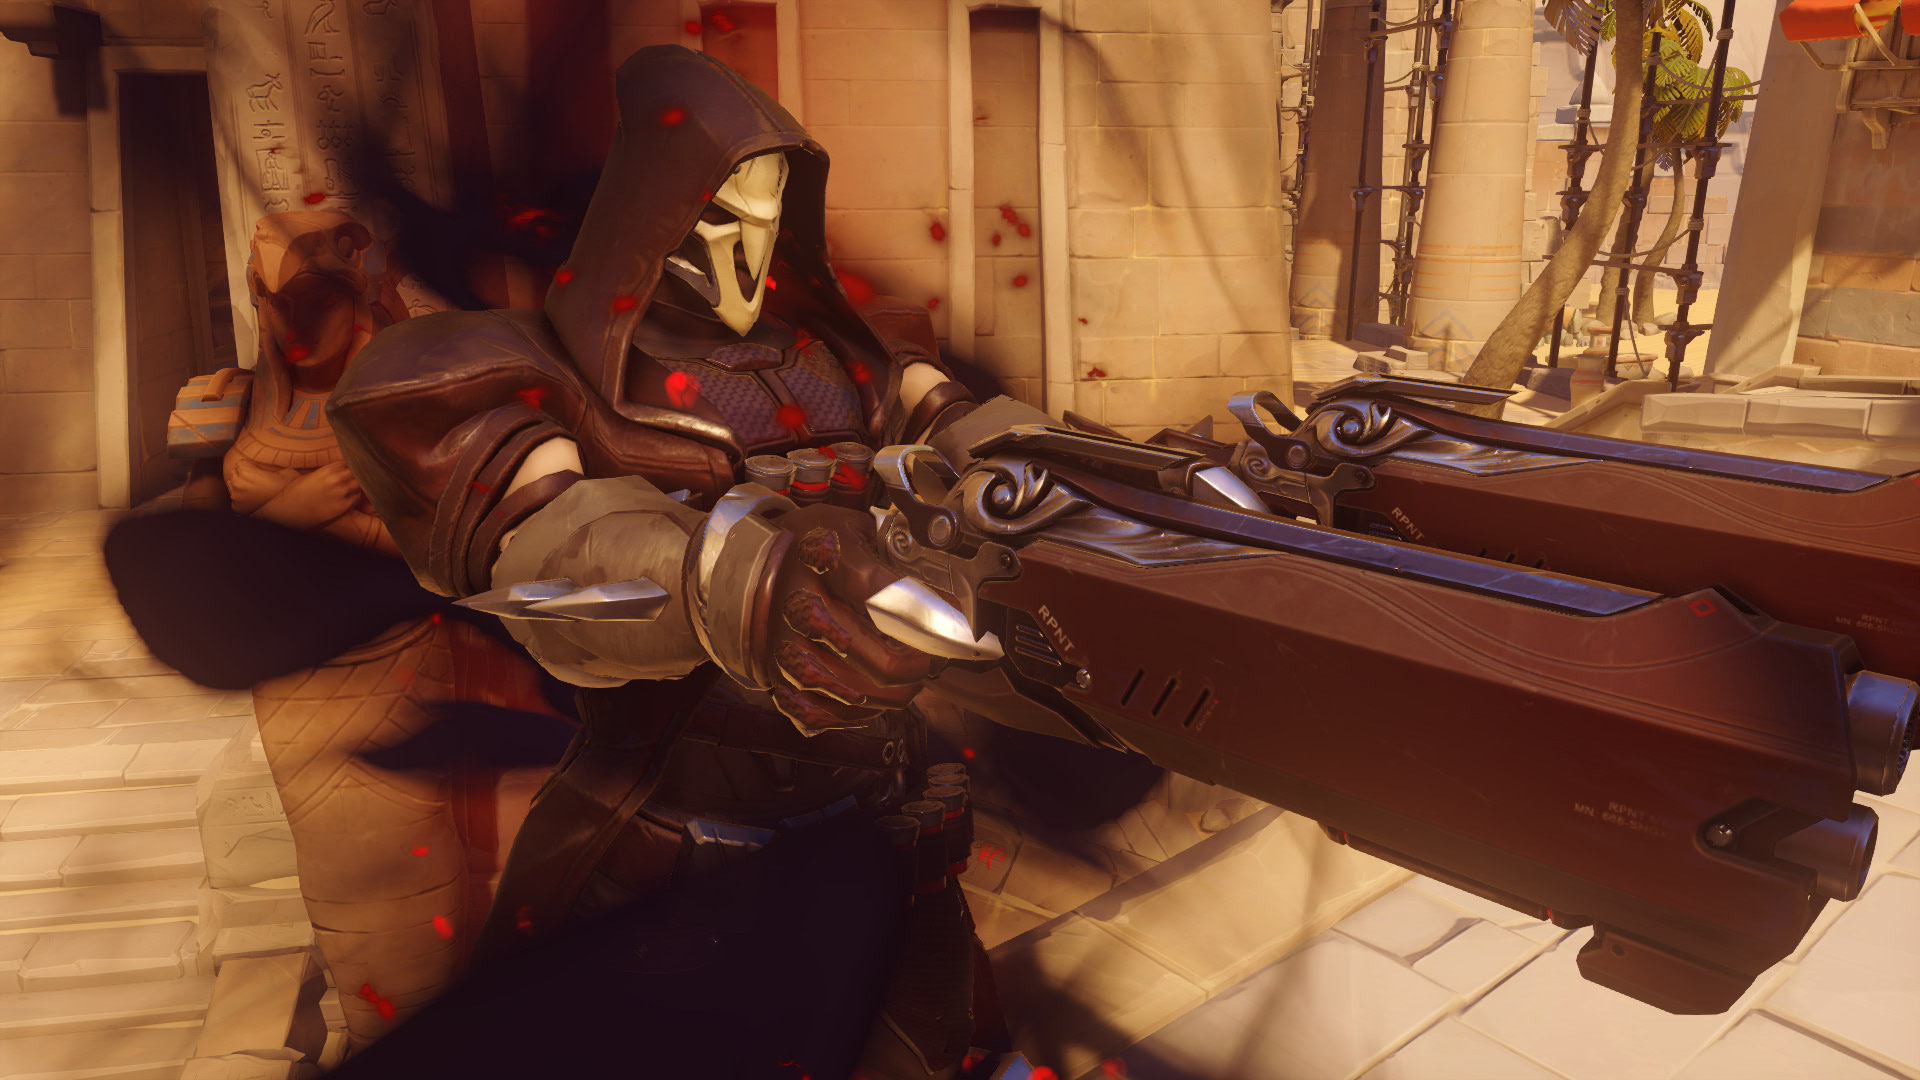 Overwatch Reaper guide: Strategy, tips, and tricks